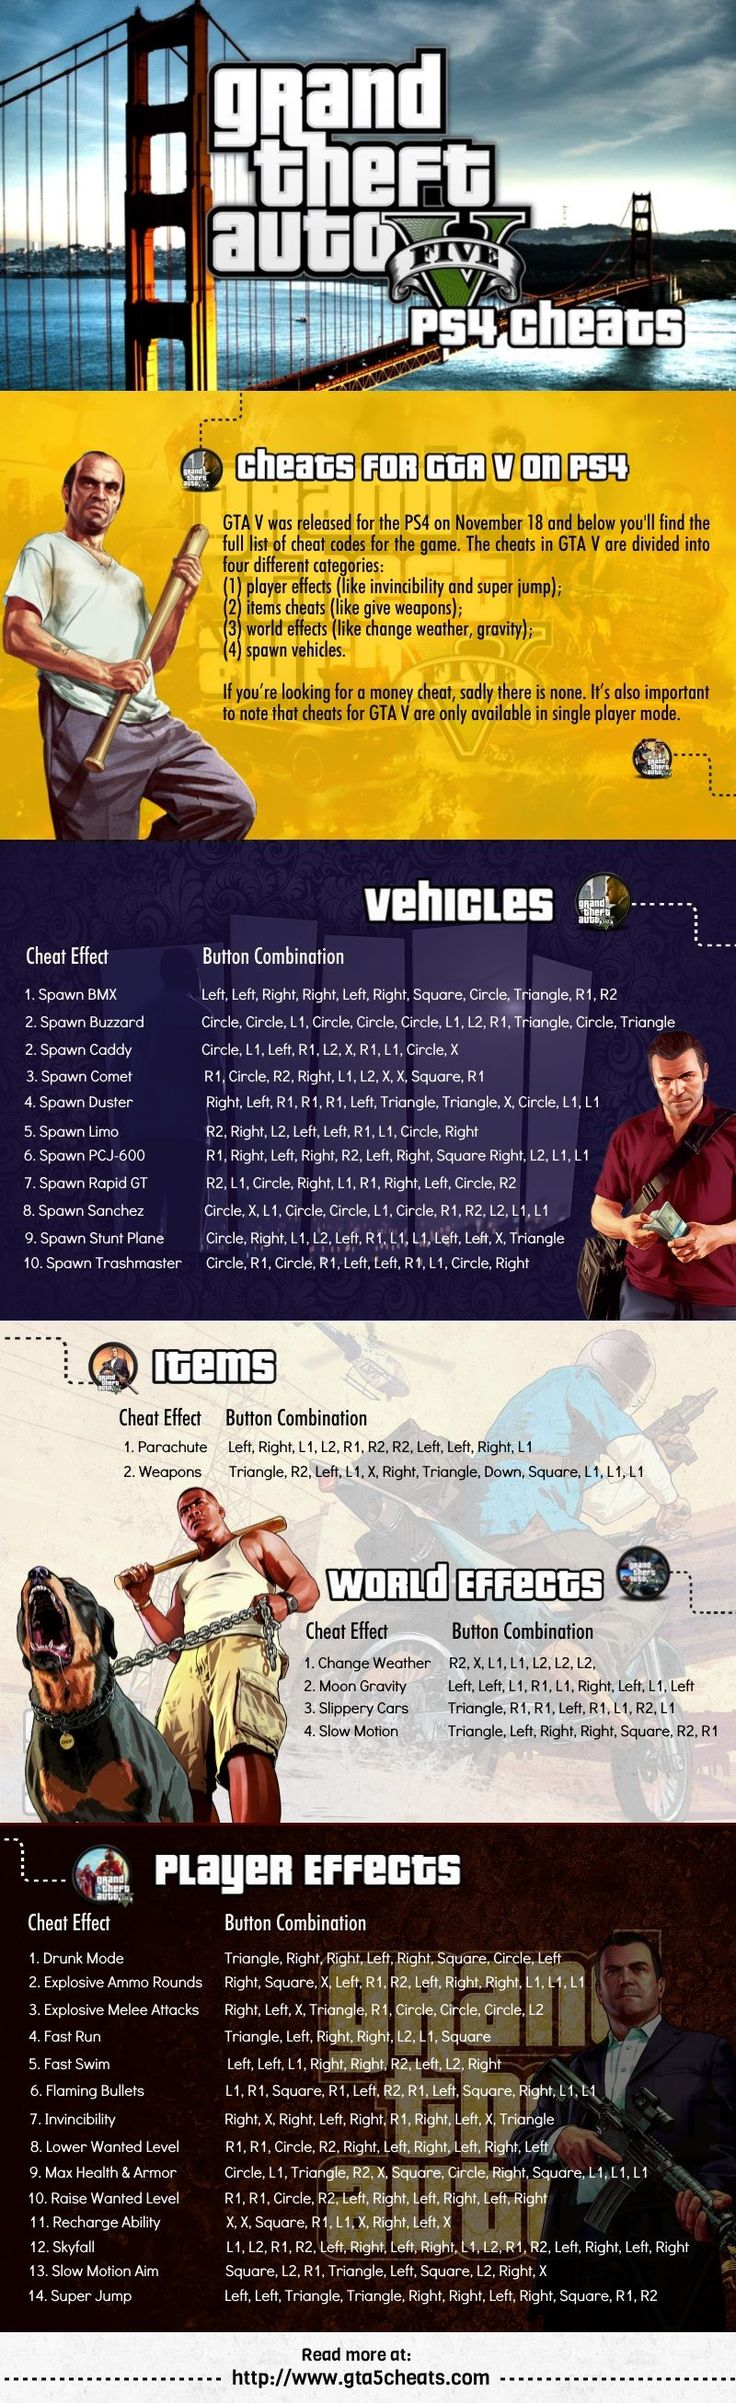 This is the full list of official cheat codes for Grand Theft Auto V (GTA V) on the Playstation 4 (PS4). We have a bunch of notes that we highly recommend you read before using the cheats. Read more at http://www.gta5cheats.com #playstation4